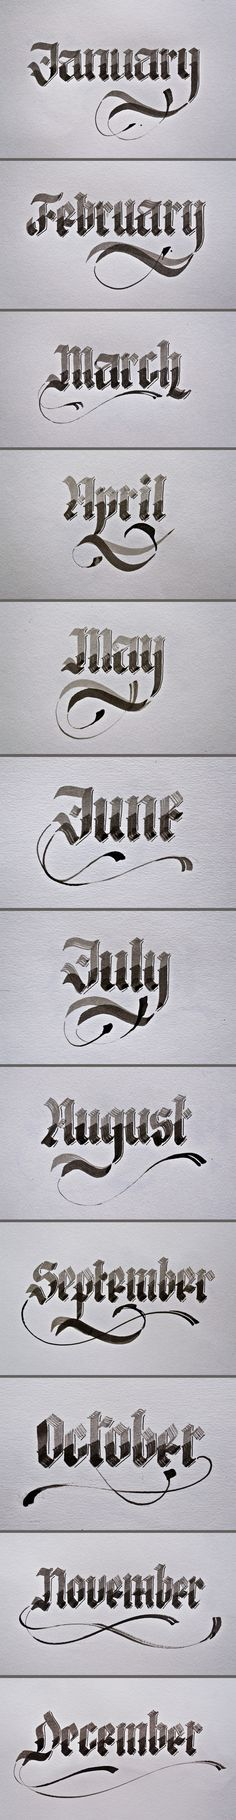 Calligraphy by Renato Molnar, via Behance. @Frances Durham Sylvia Durham Sylvia Durham Sylvia Durham Sylvia Doyle, this made me think of you!